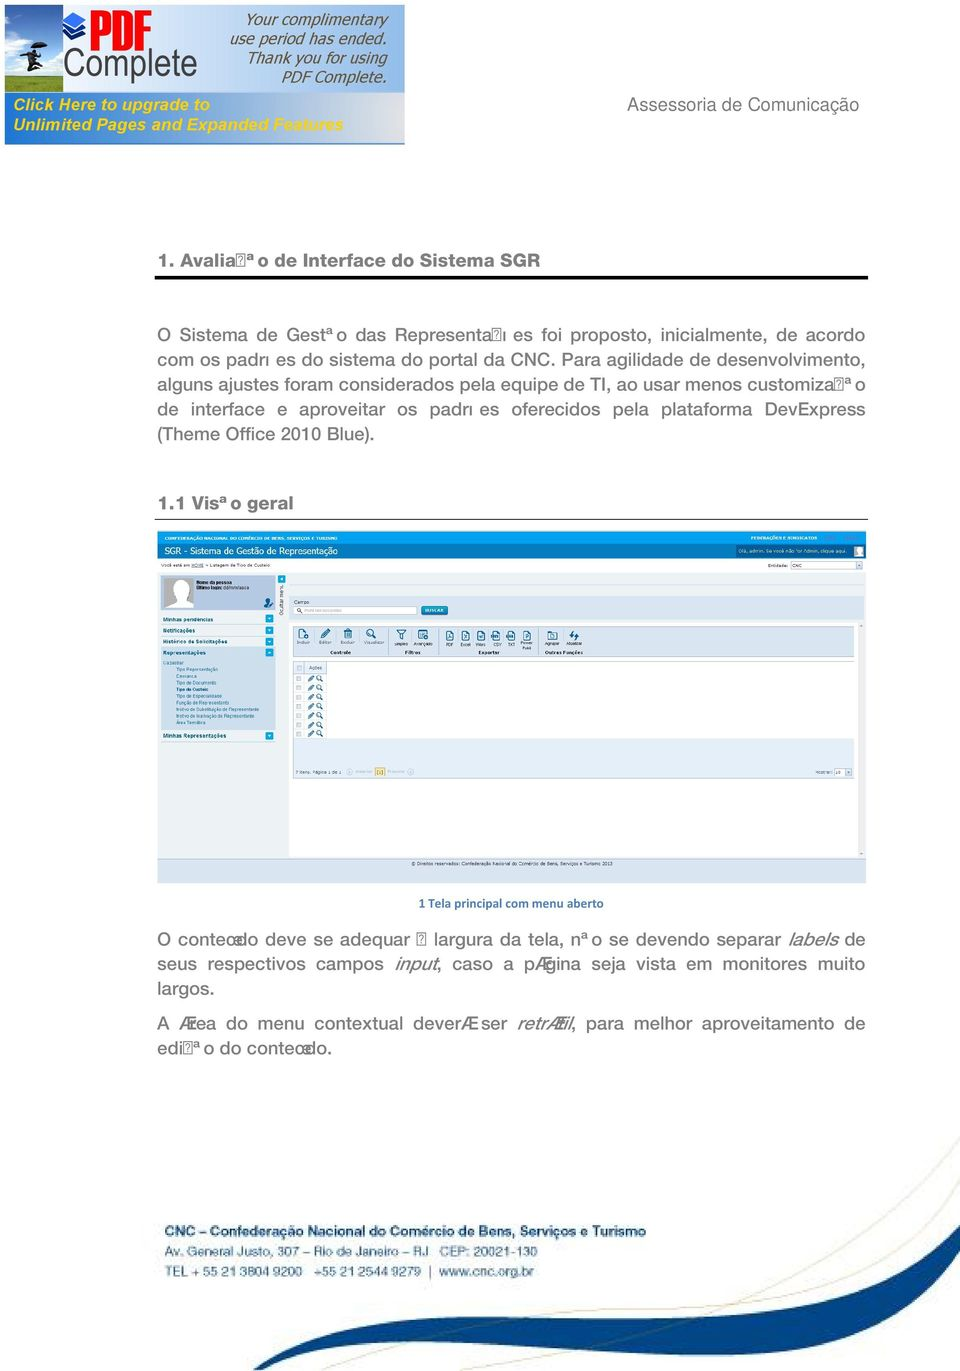 plataforma DevExpress (Theme Office 2010 Blue). 1.